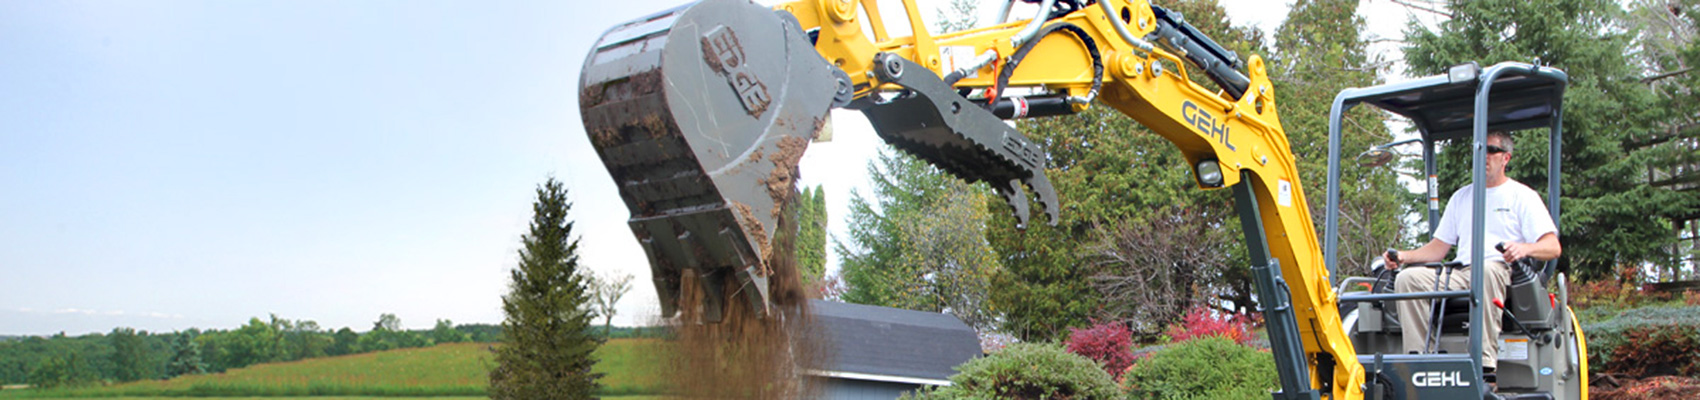 Compact Excavator Digging Hole